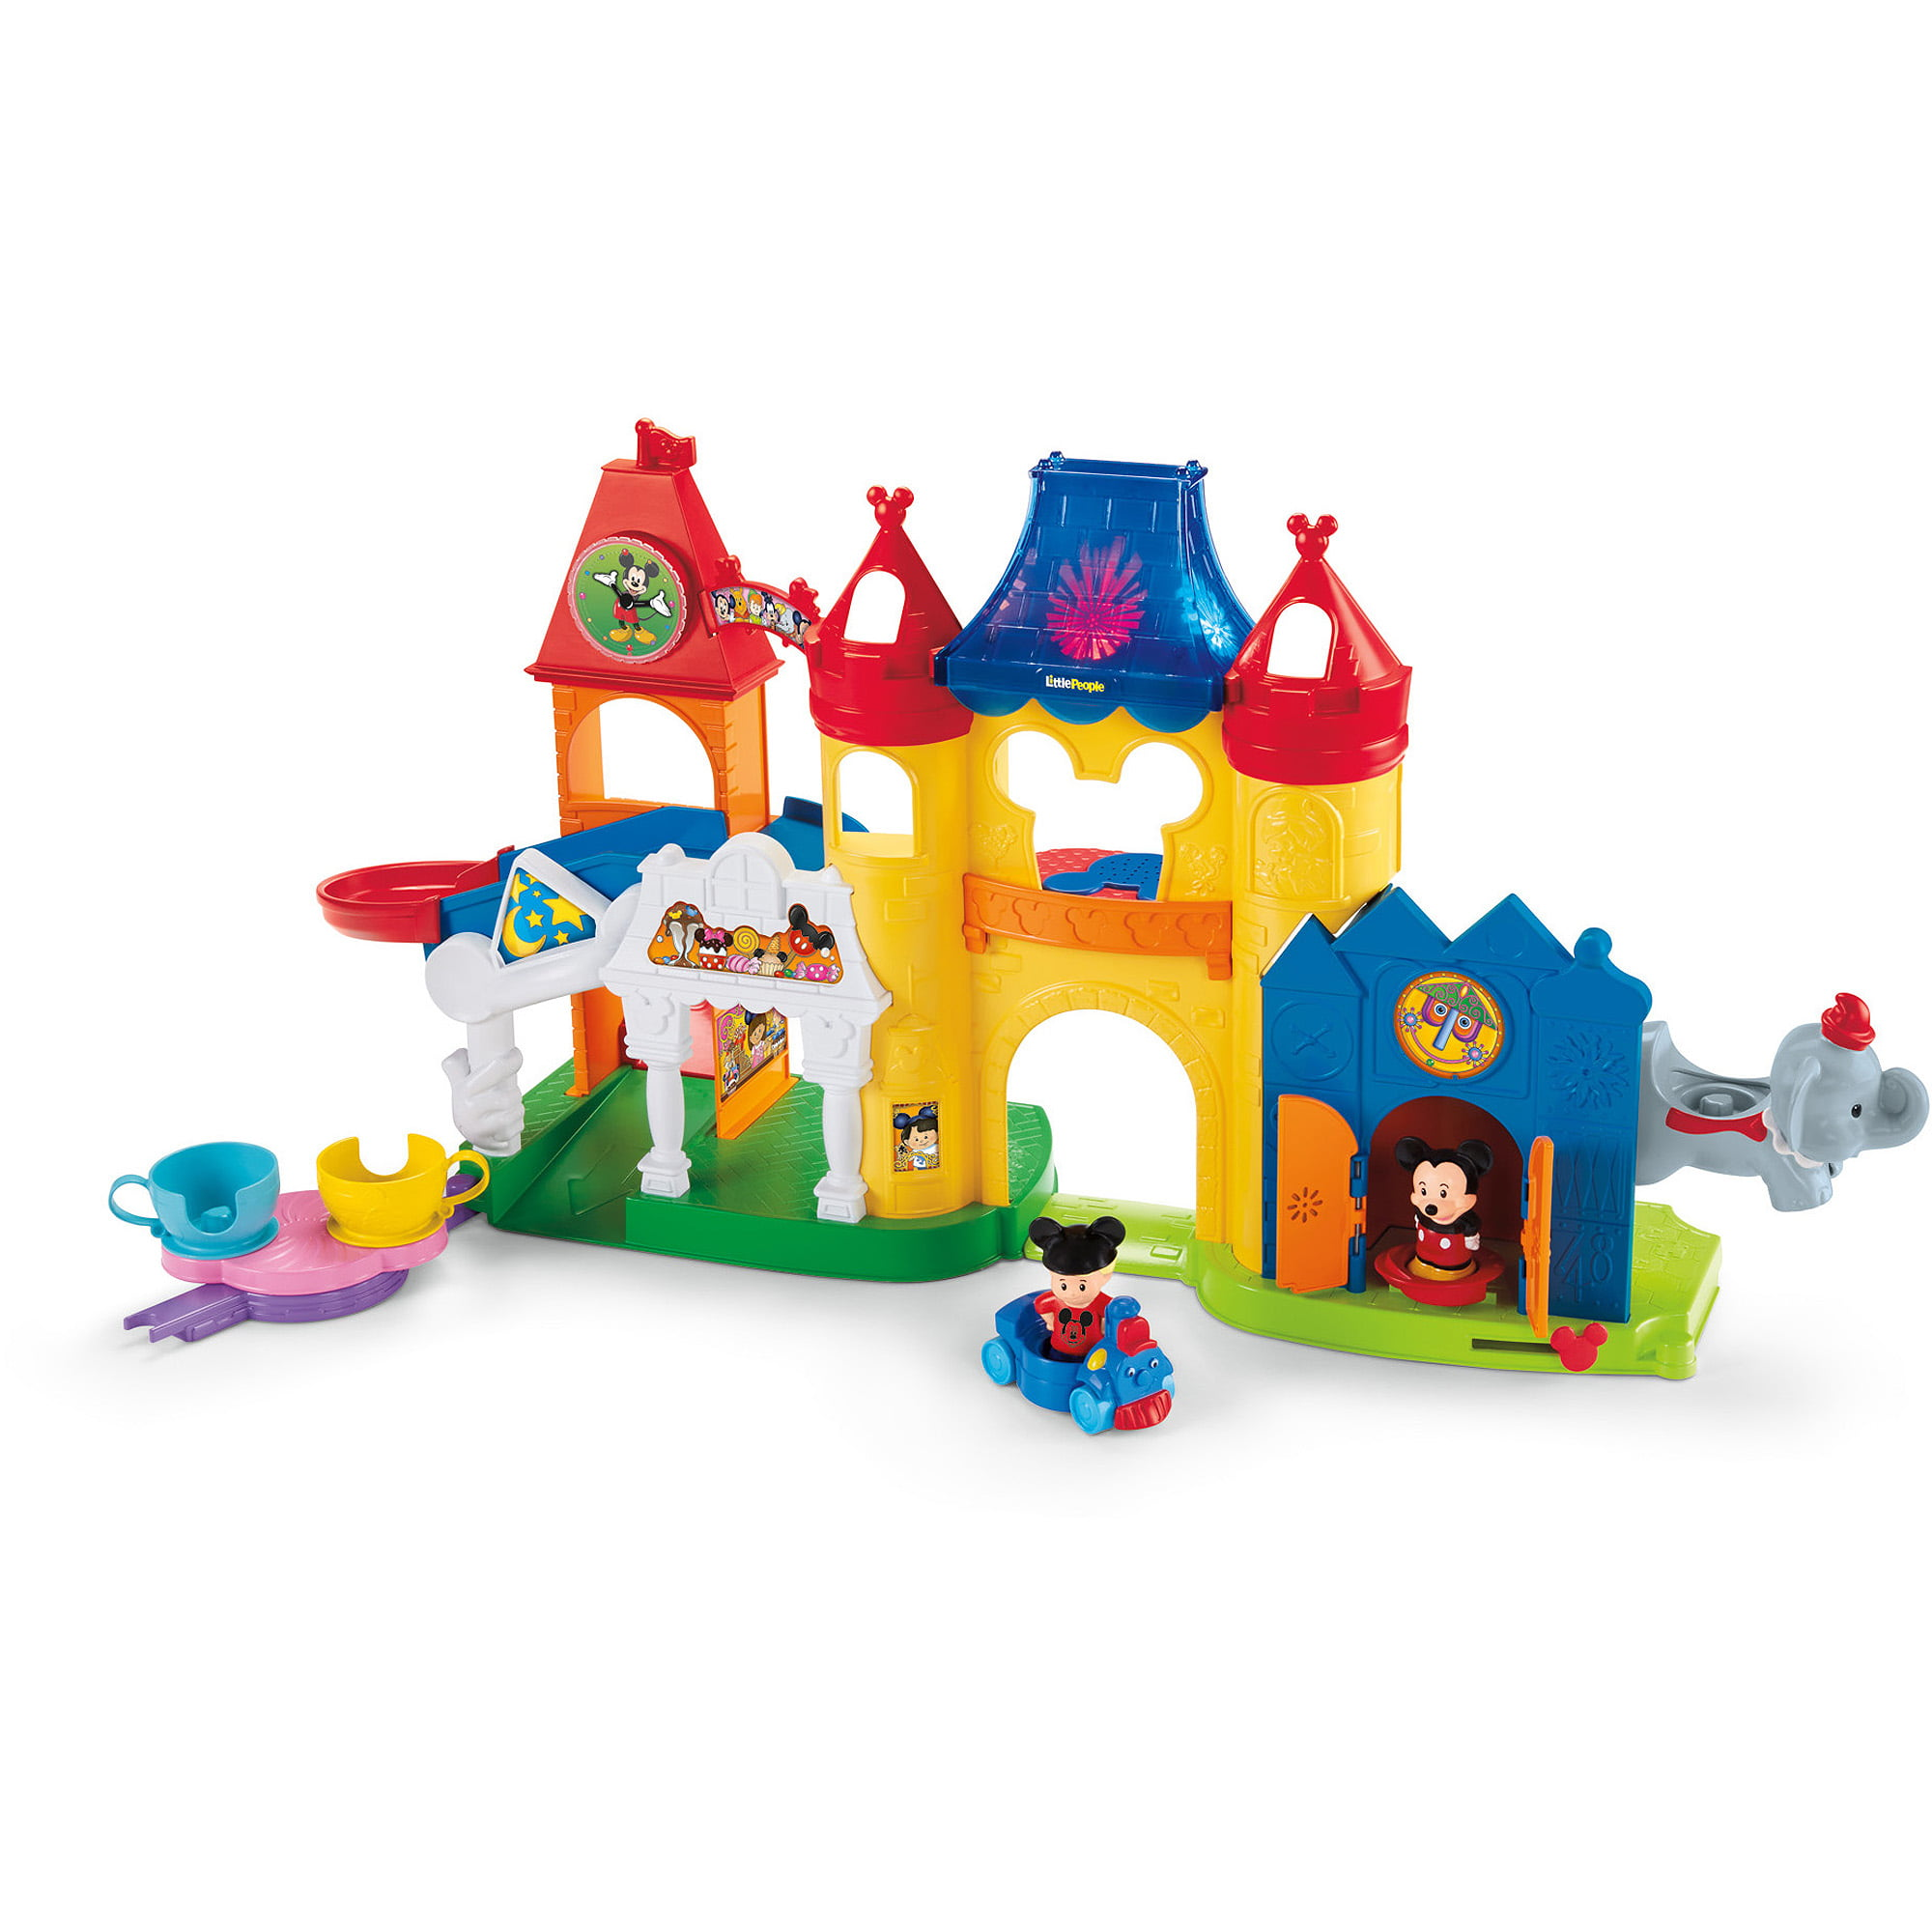 Magic Of Disney Day At Disney By Little People by FISHER PRICE